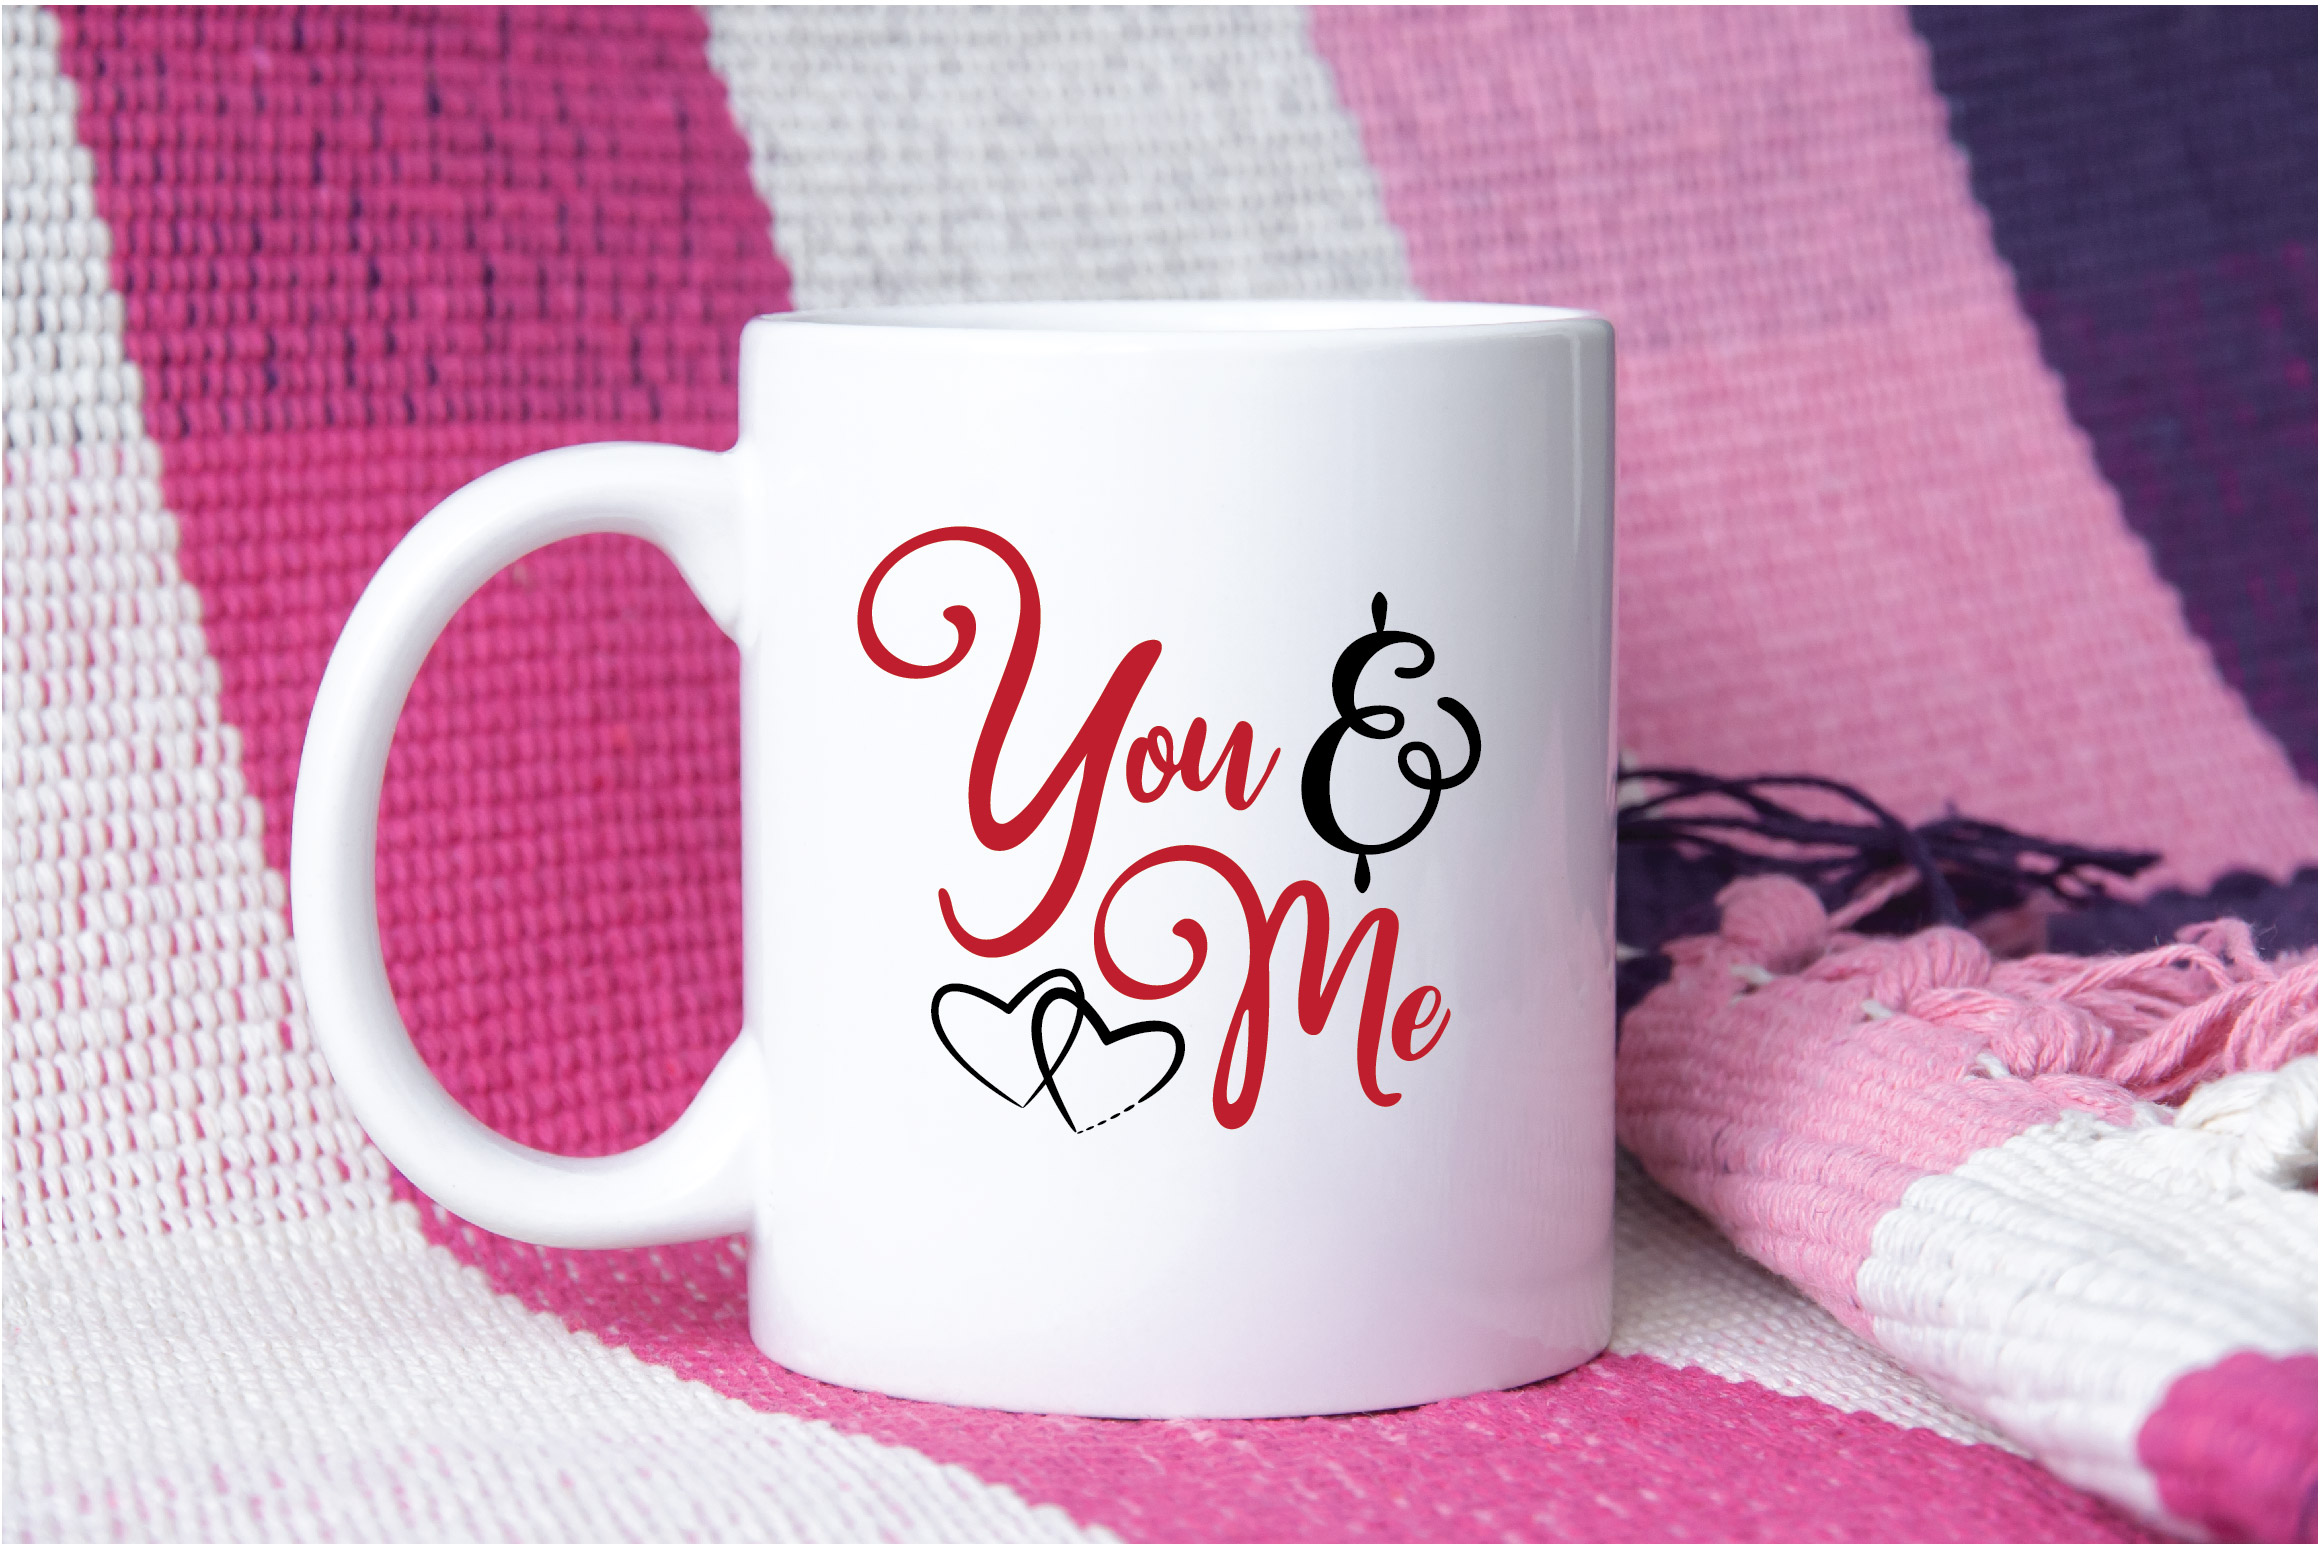 Valentine SVG Bundle with 25 SVG Cut Files DXF EPS PNG example image 7